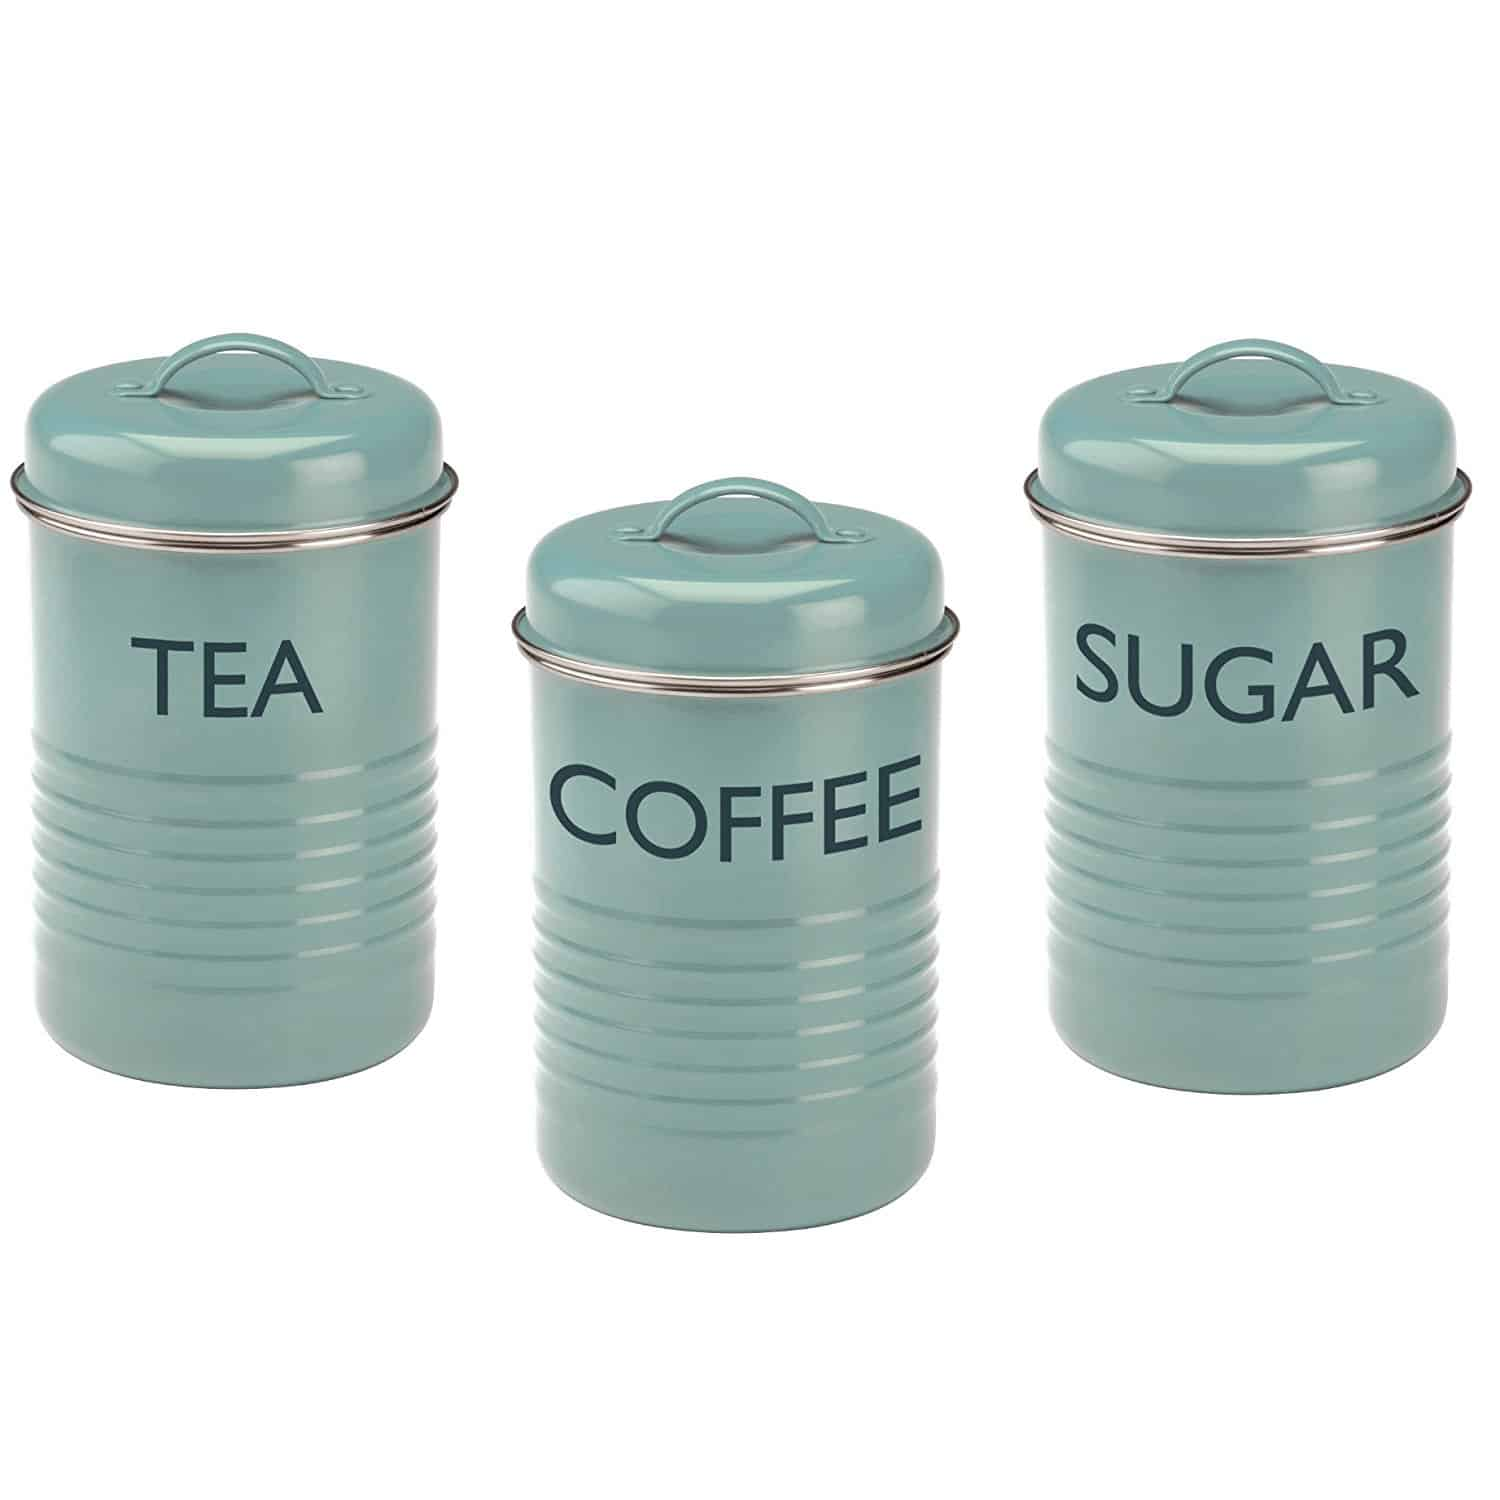 set of three aqua canisters to store tea, coffee, or sugar